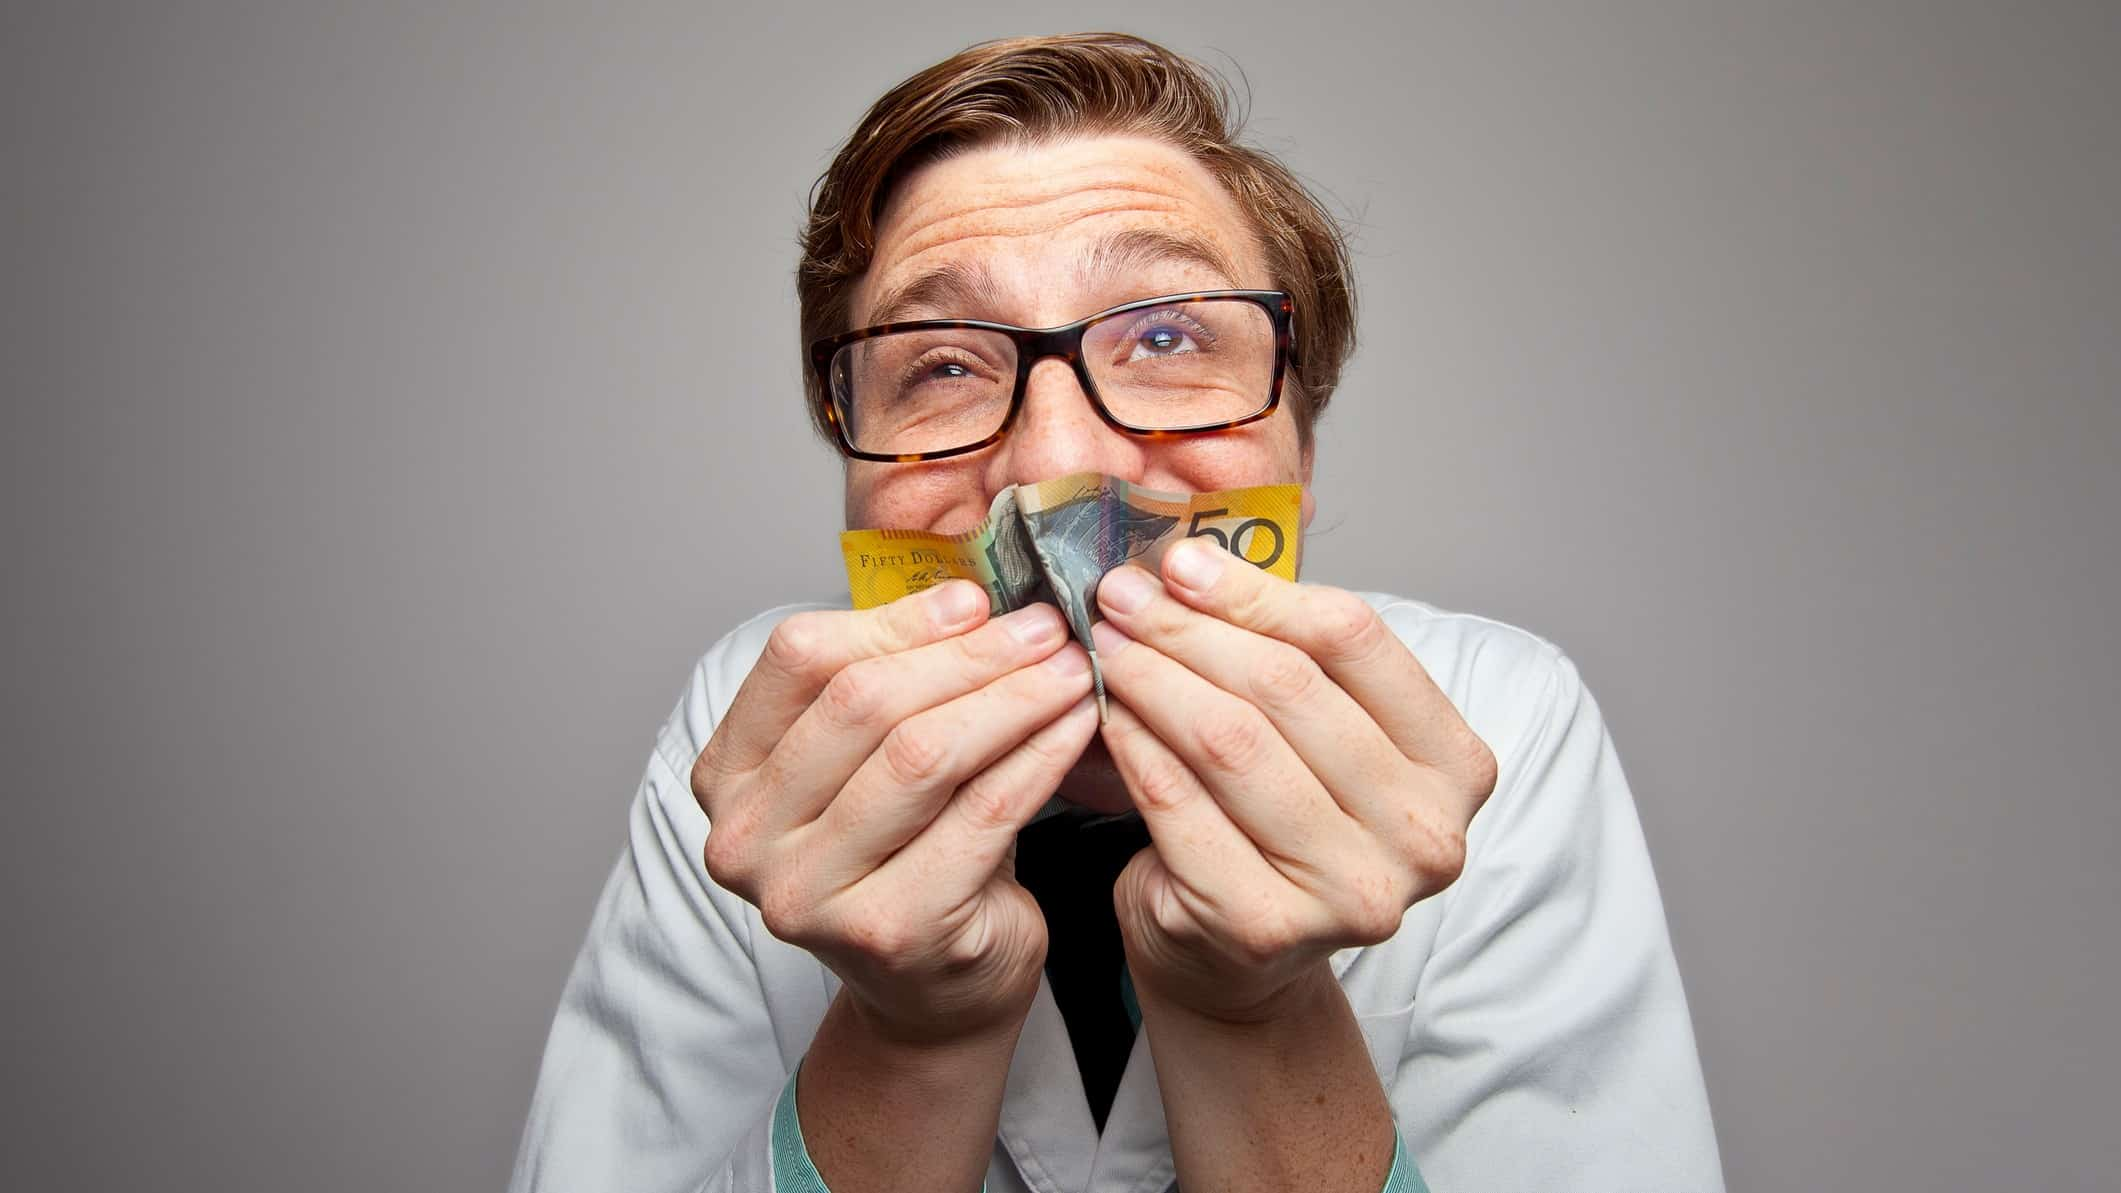 asx share price dividend payments represented by man holding $50 note close to his face